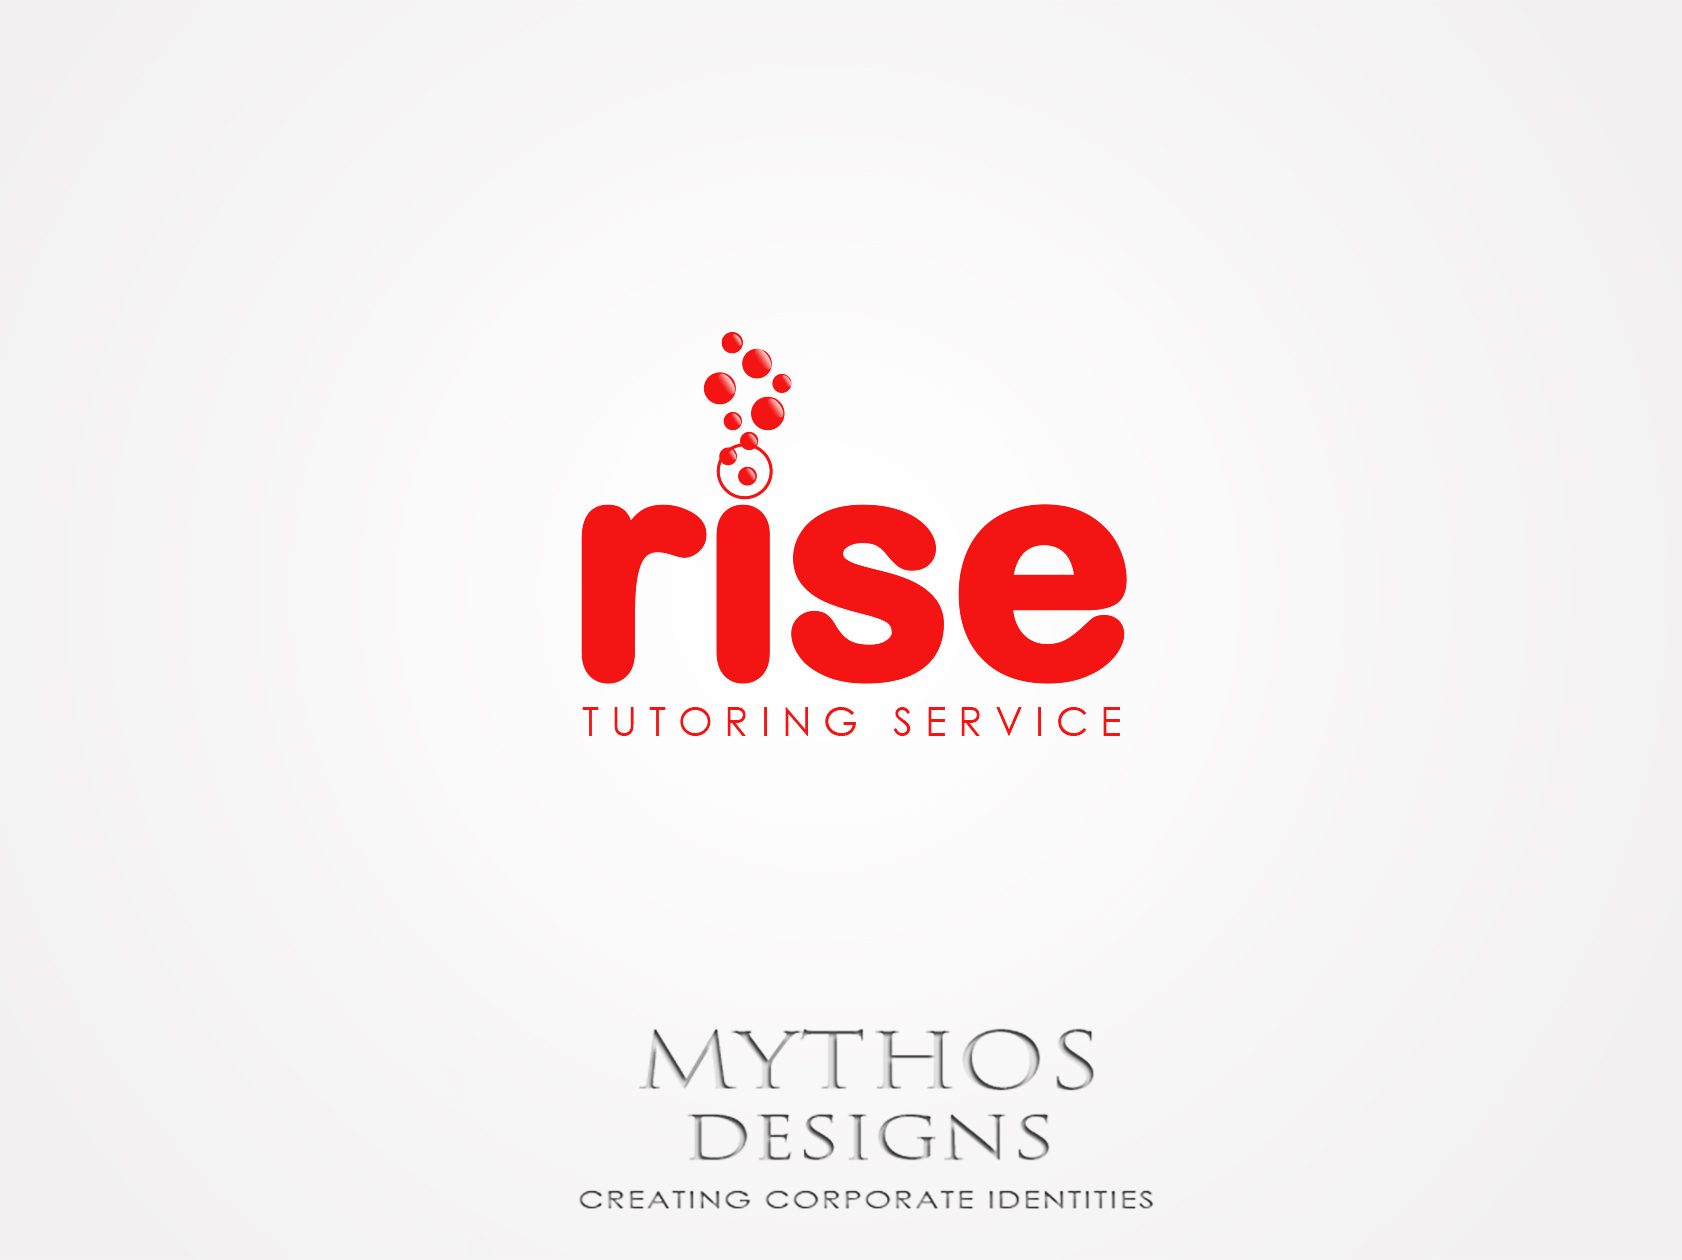 Logo Design by Mythos Designs - Entry No. 238 in the Logo Design Contest Imaginative Logo Design for Rise Tutoring Service.